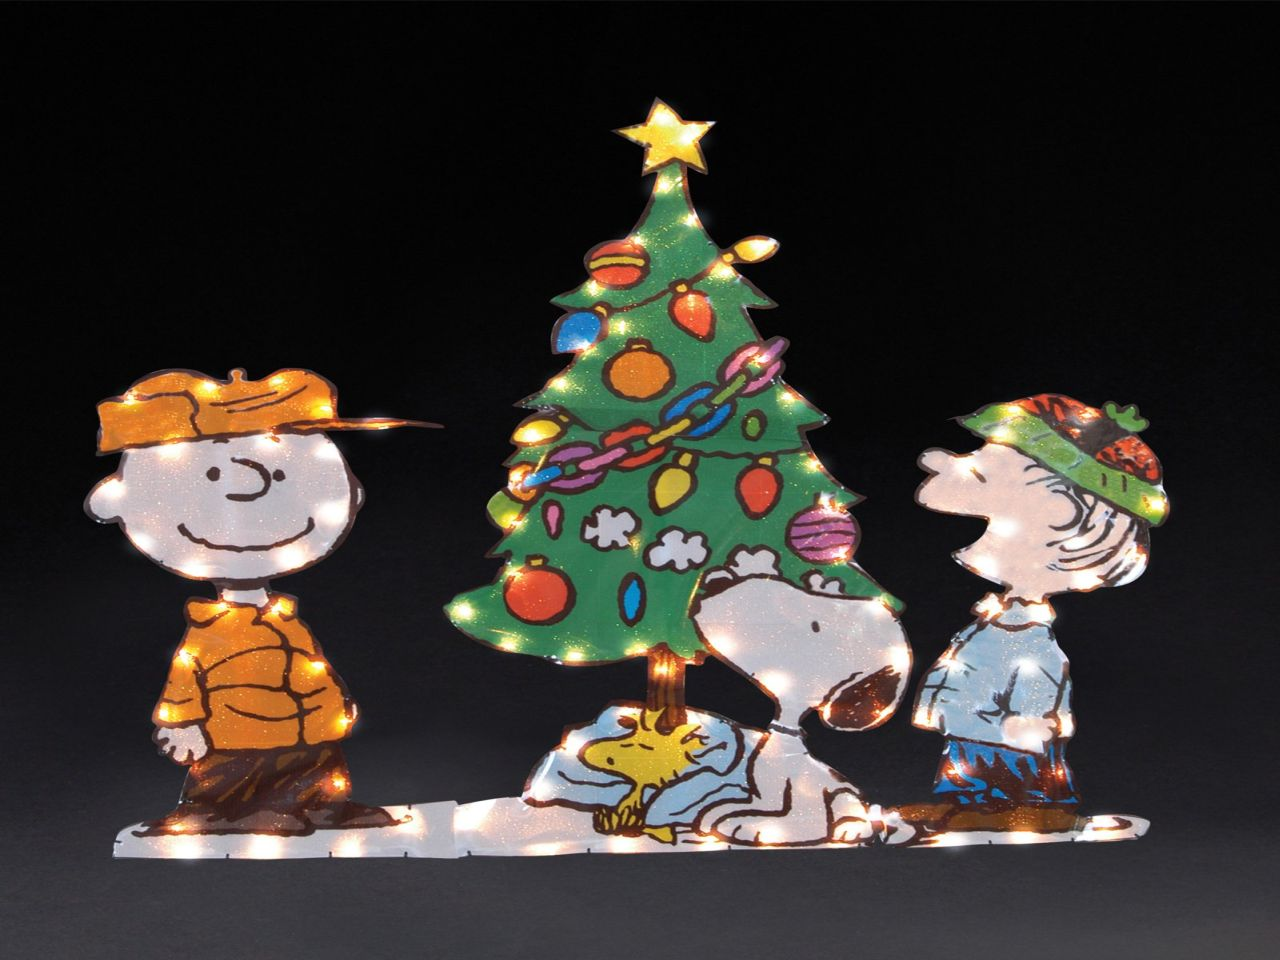 Free Download Charlie Brown Christmas Wallpaper Wallpaper Mansion